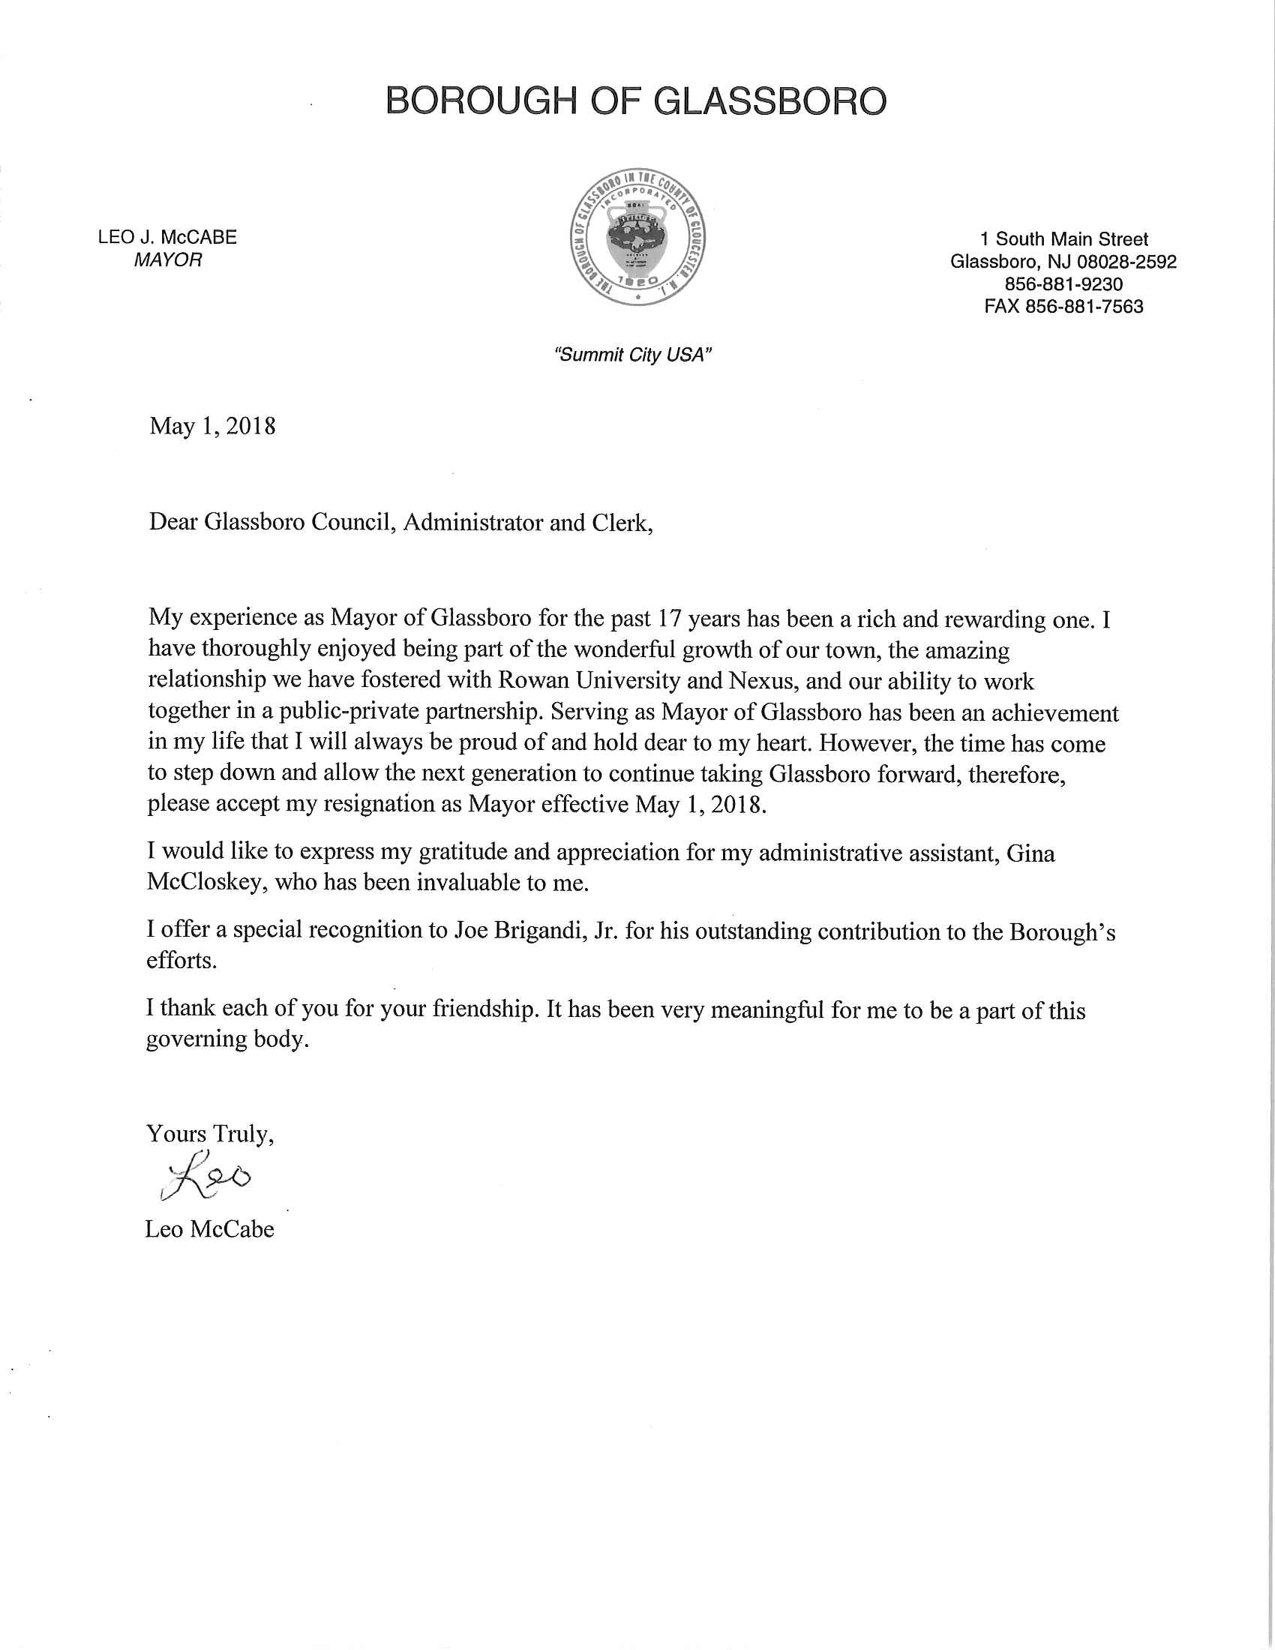 07-Communication 1-MAYOR LEO MCCABE'S RESIGNATION LETTER.jpeg